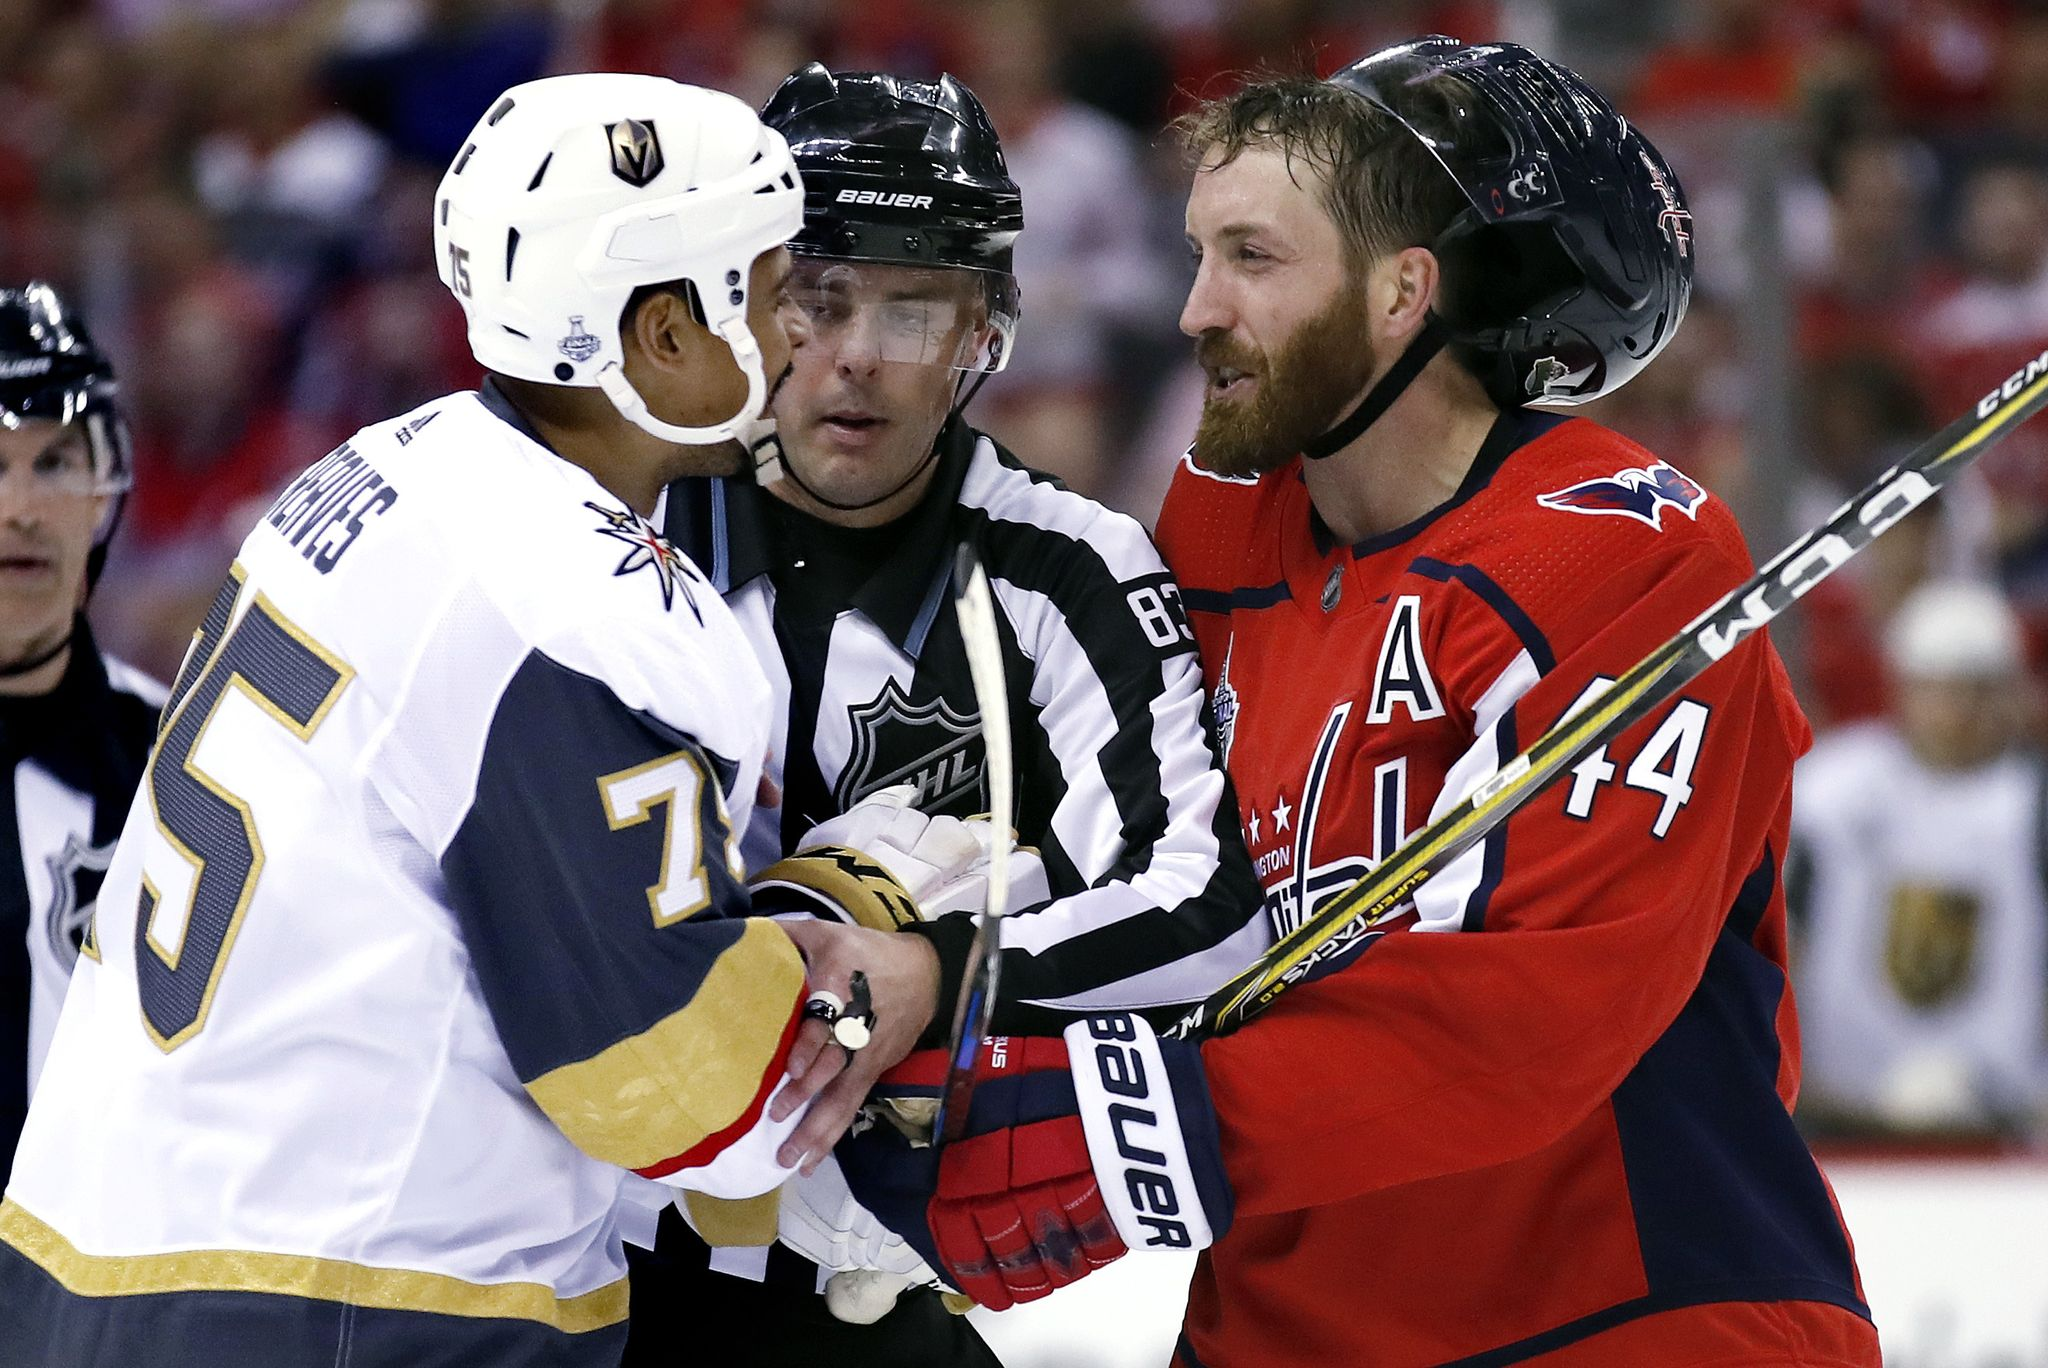 Stanley_cup_golden_knights_capitals_hockey_96783.jpg-062a6_s2048x1368